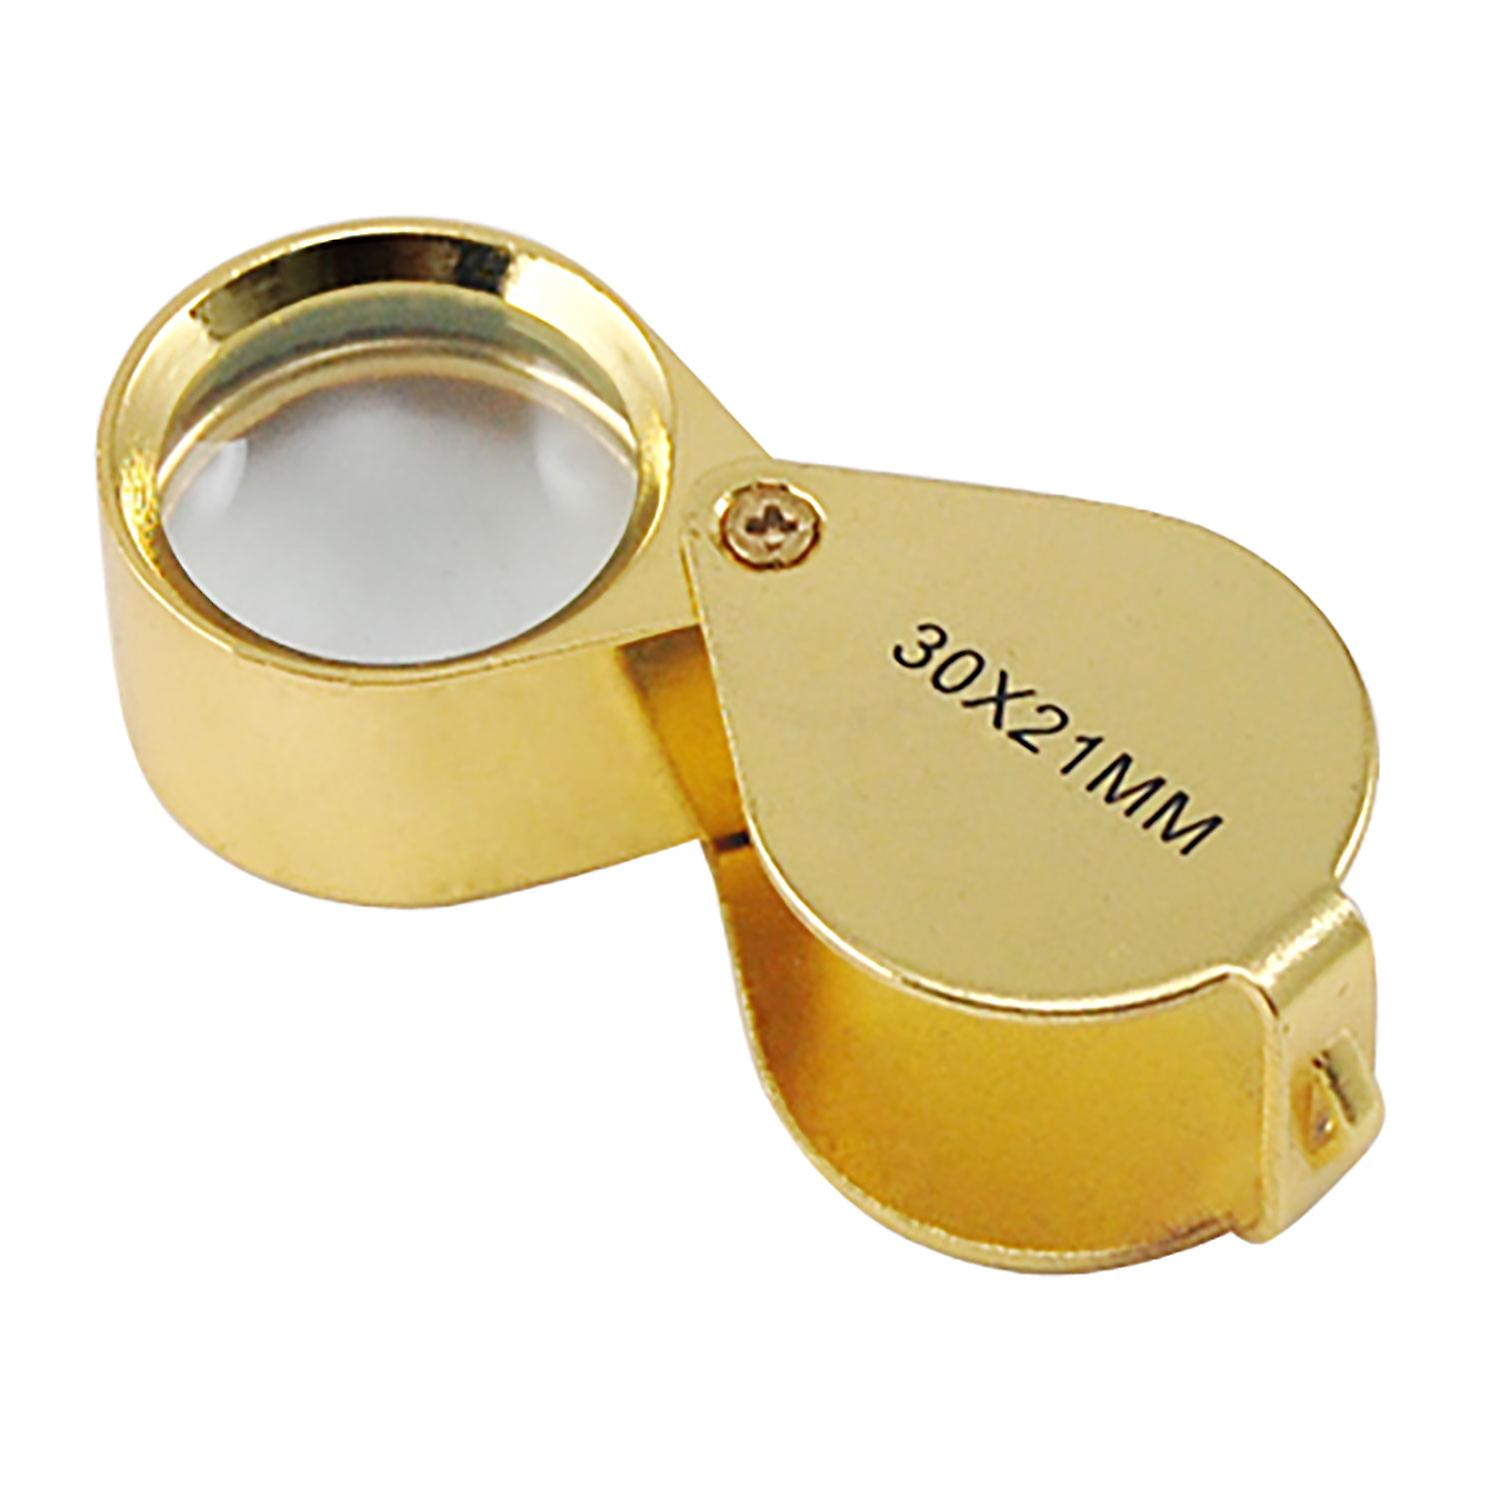 TRIXES Gold Pocket Magnifier 30x Magnification Loupe Glass Magnifier Eye Lens